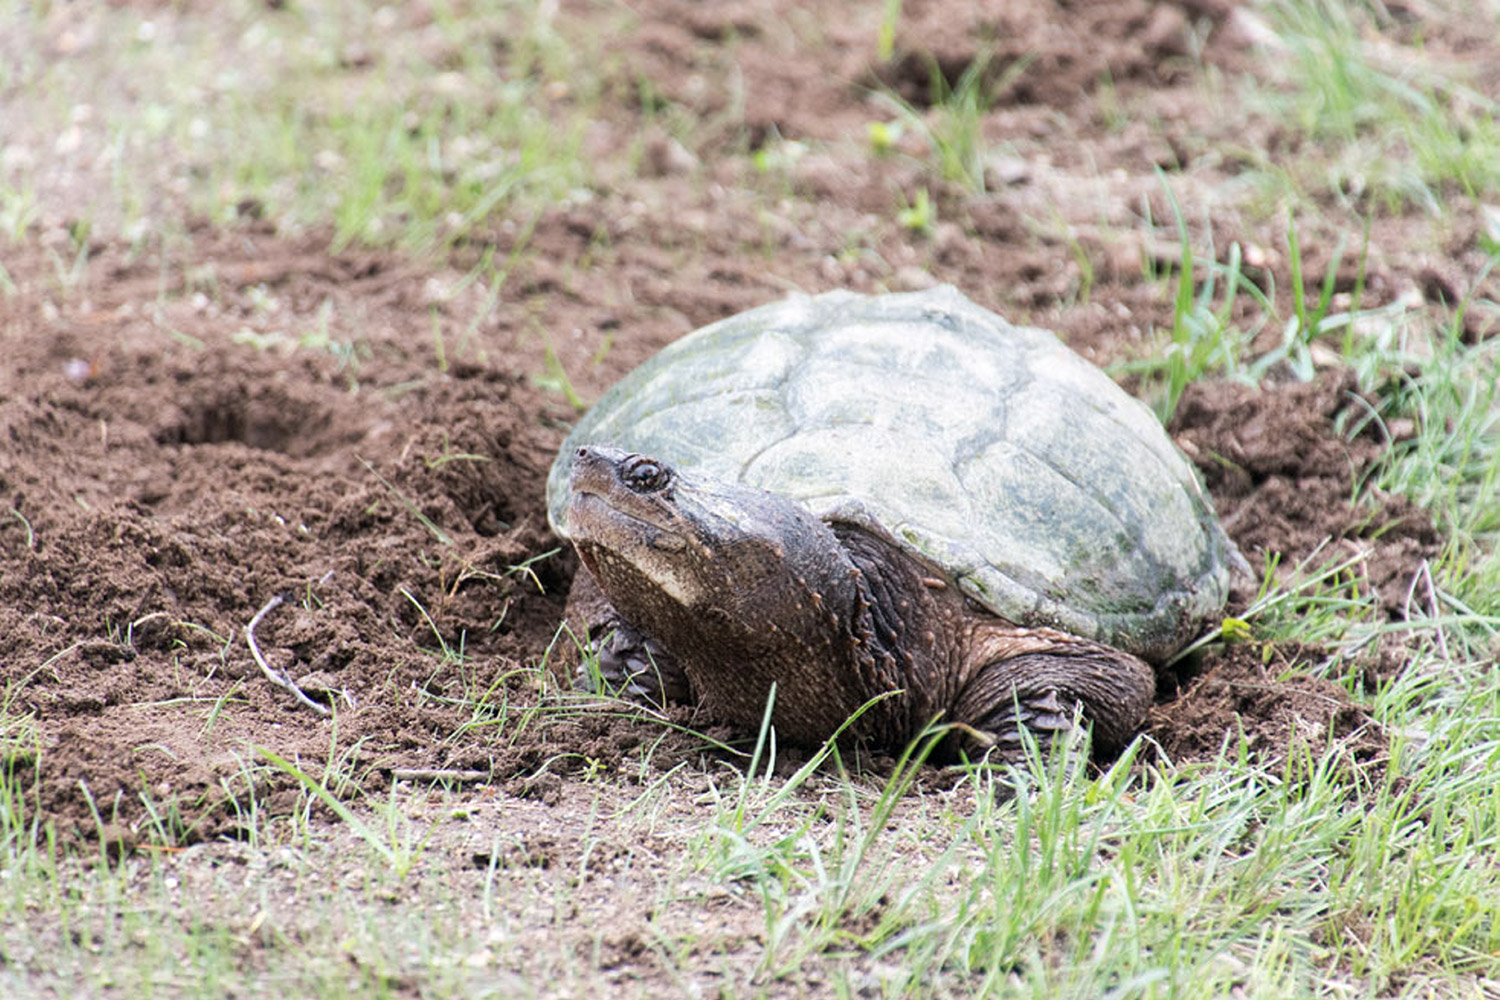 The snapping turtle at Woods Pond in Bridgton doesn't want George Kostovick of Harrison getting too close. And he won't if he values his fingertips.